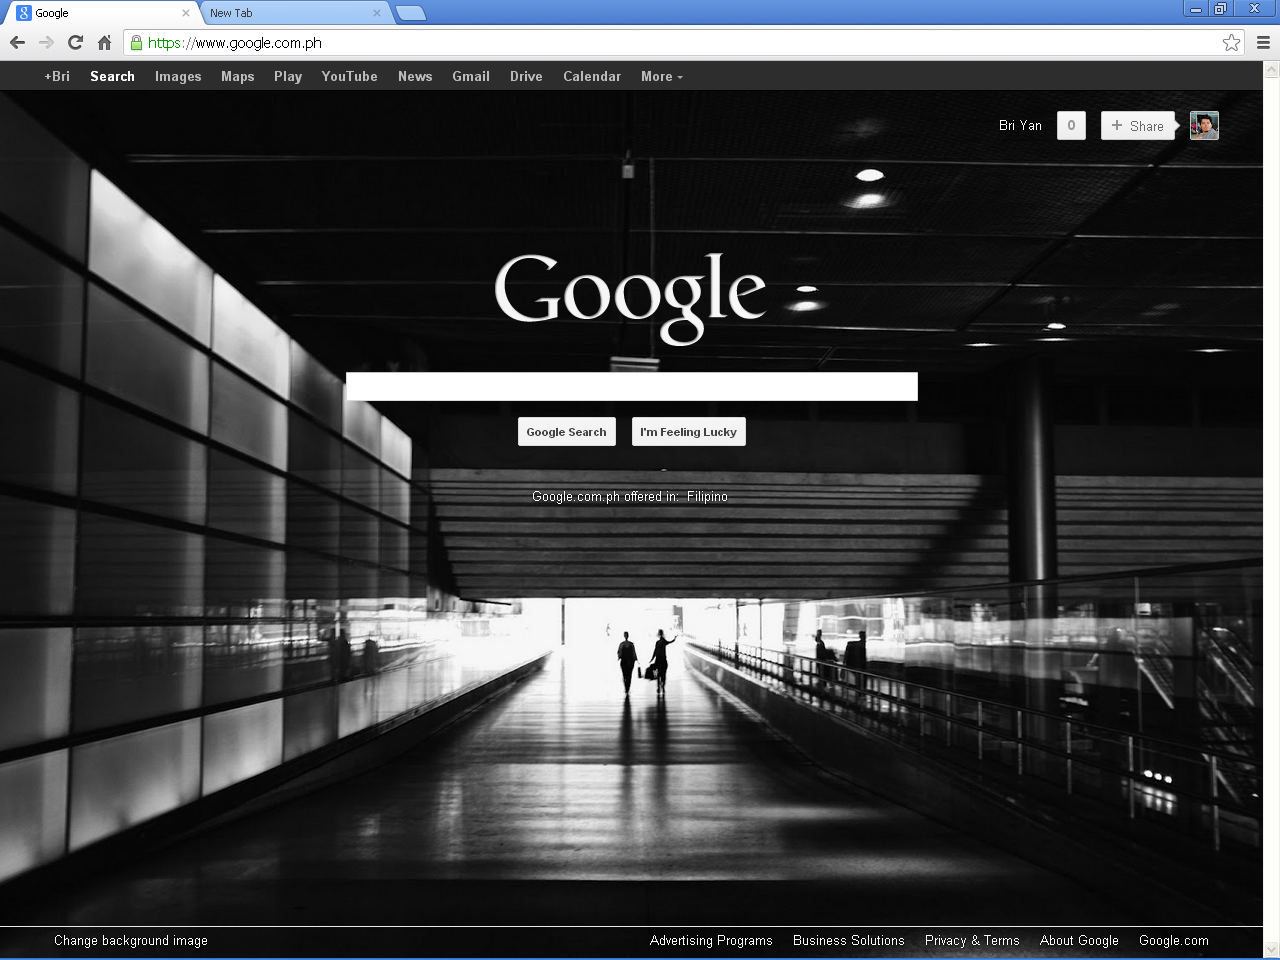 How to change google browser background image howtoquick net for Homepage wallpaper